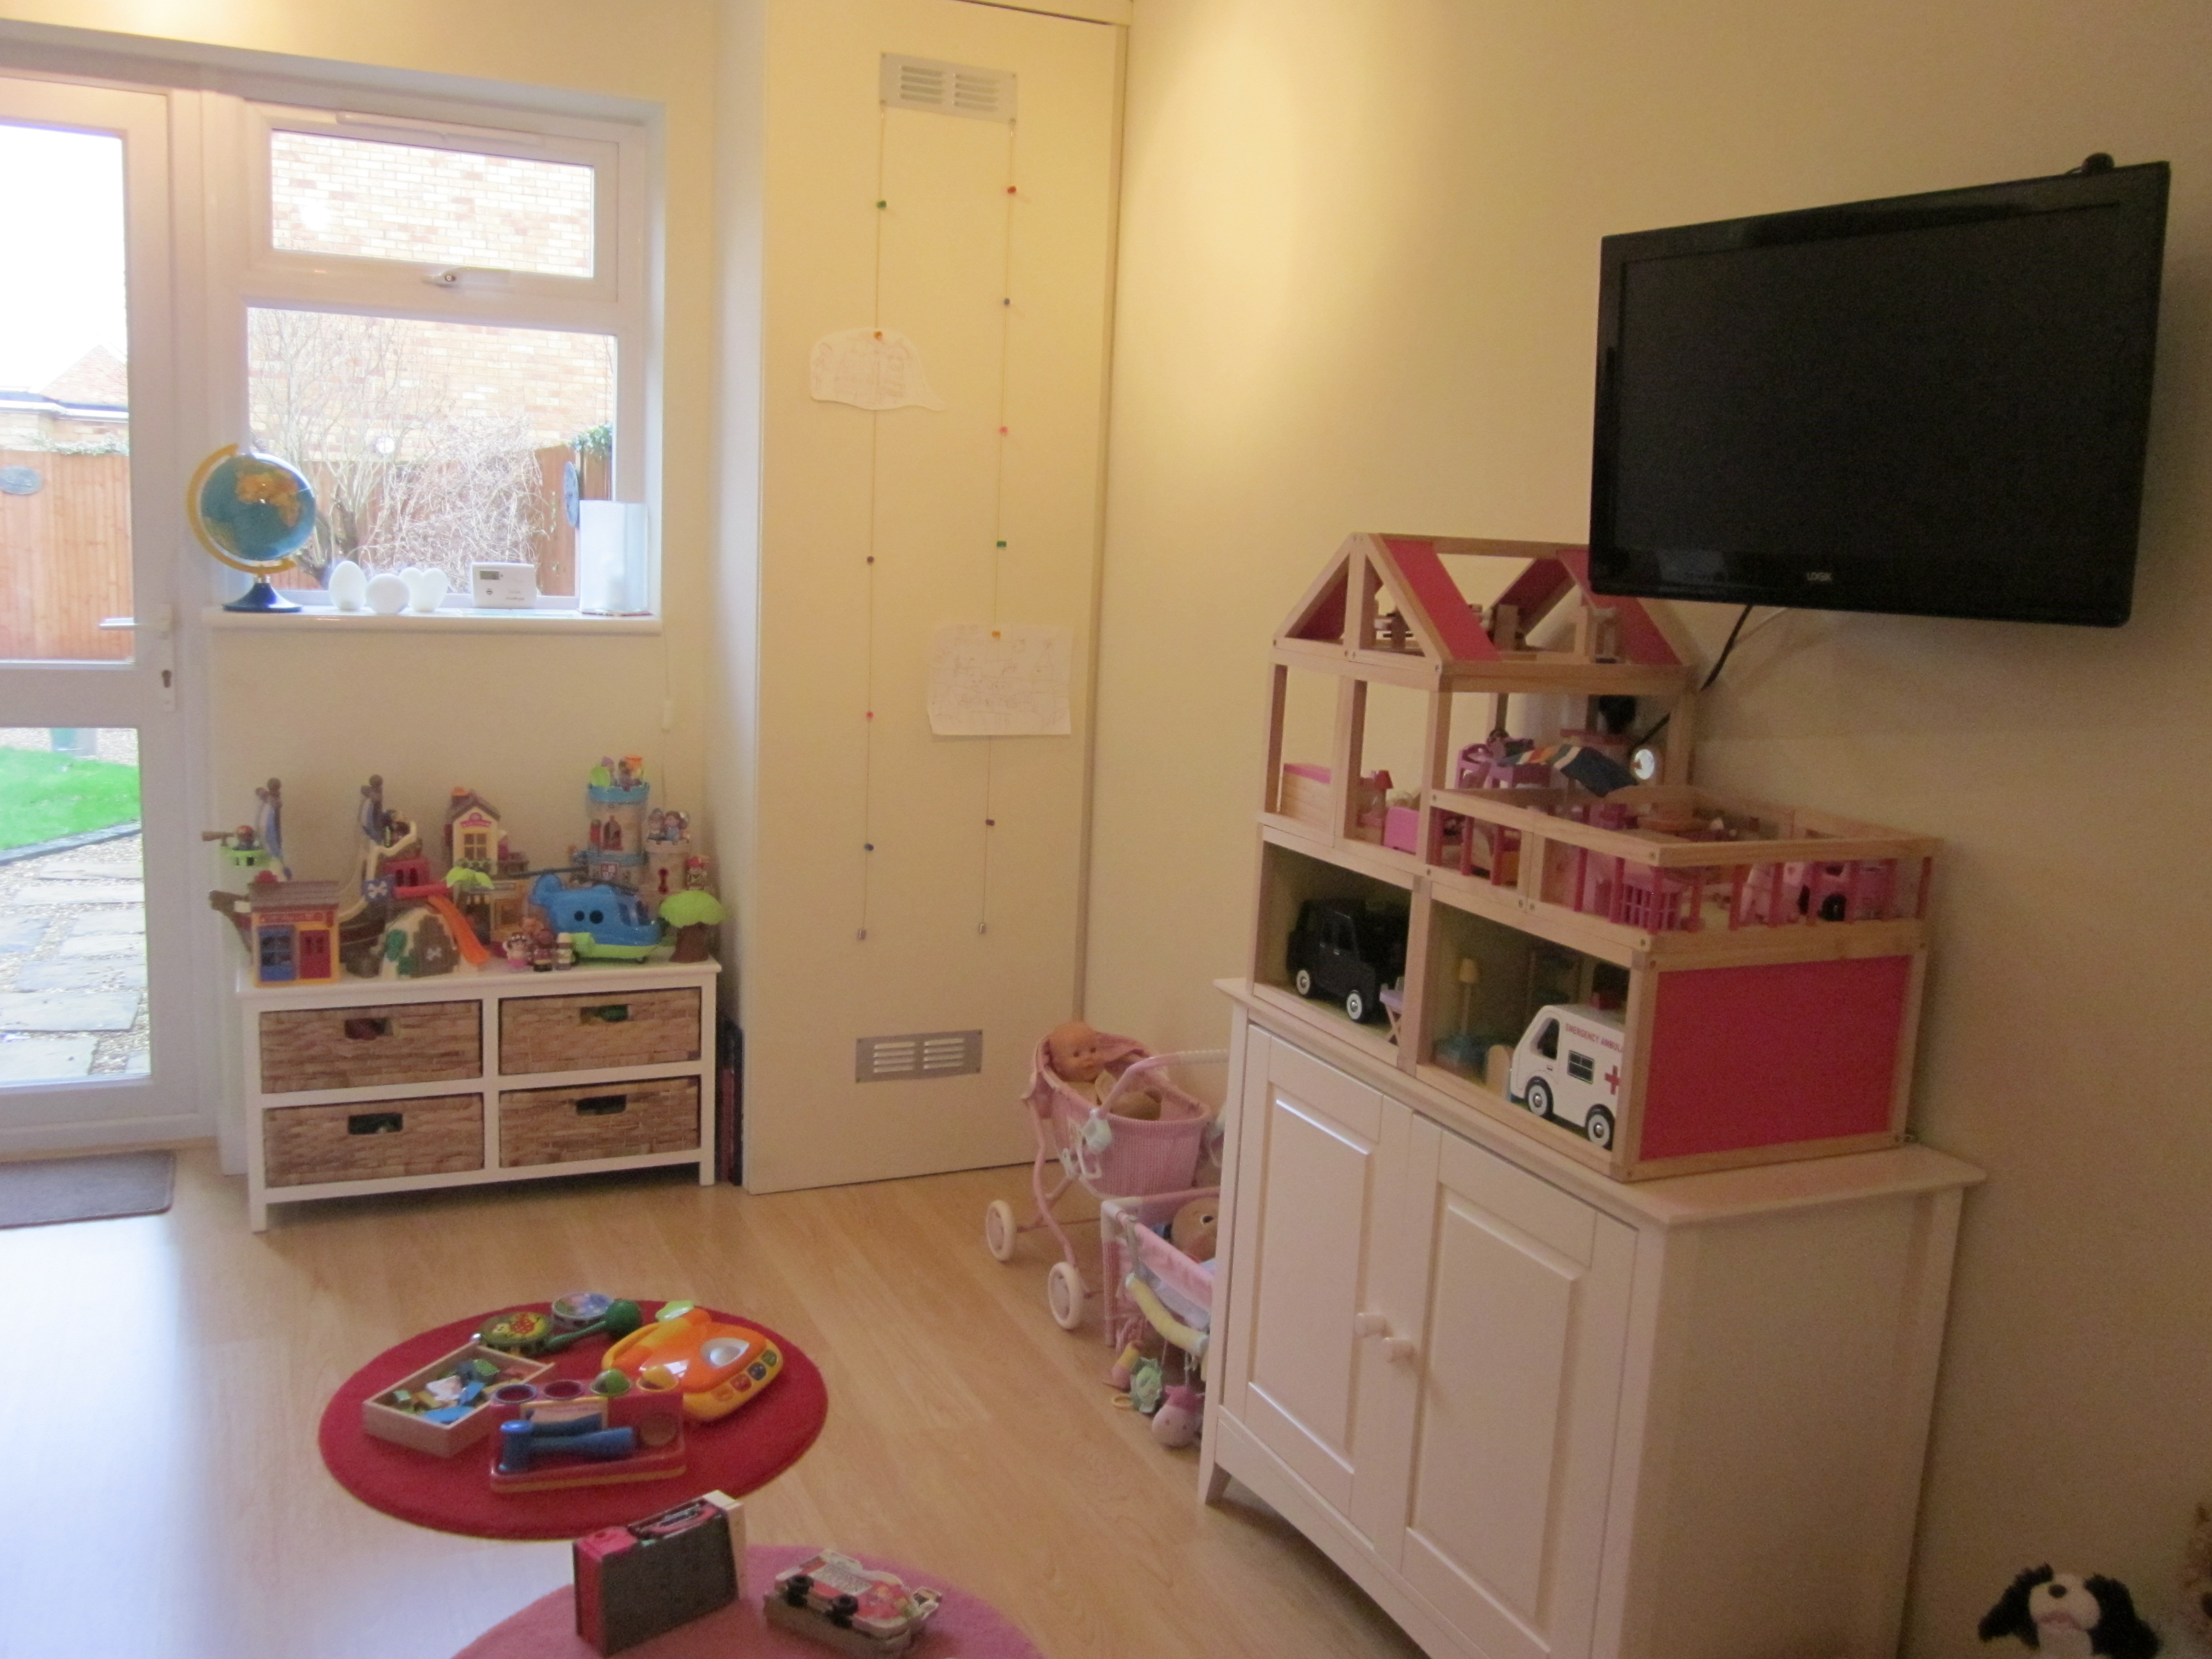 The new play area with door leading to garage.